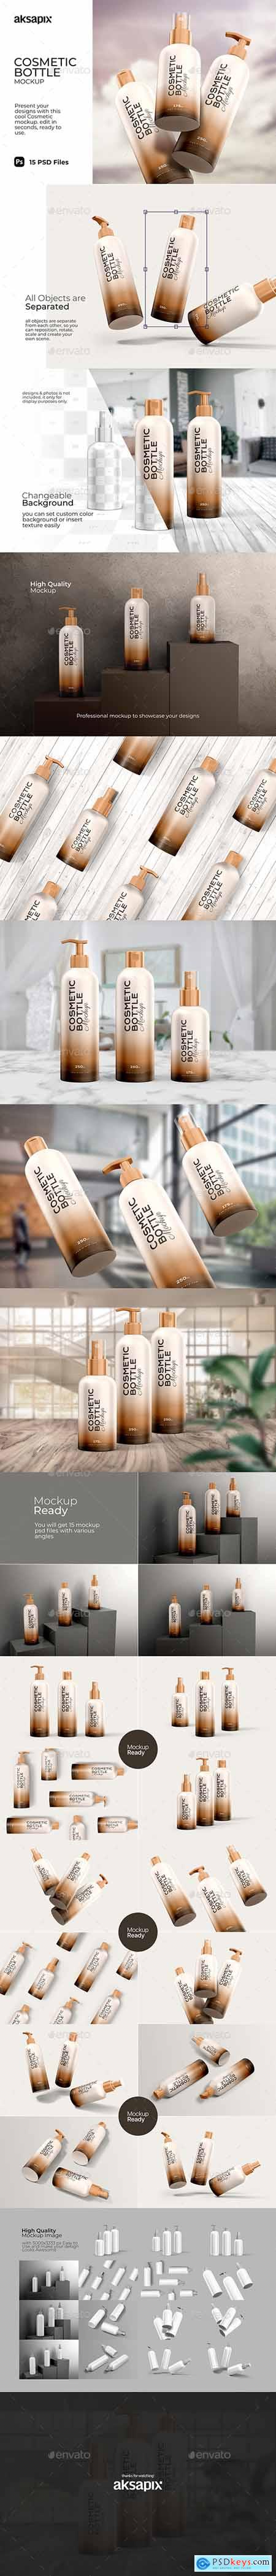 Cosmetic Bottle - Mockup 29898641